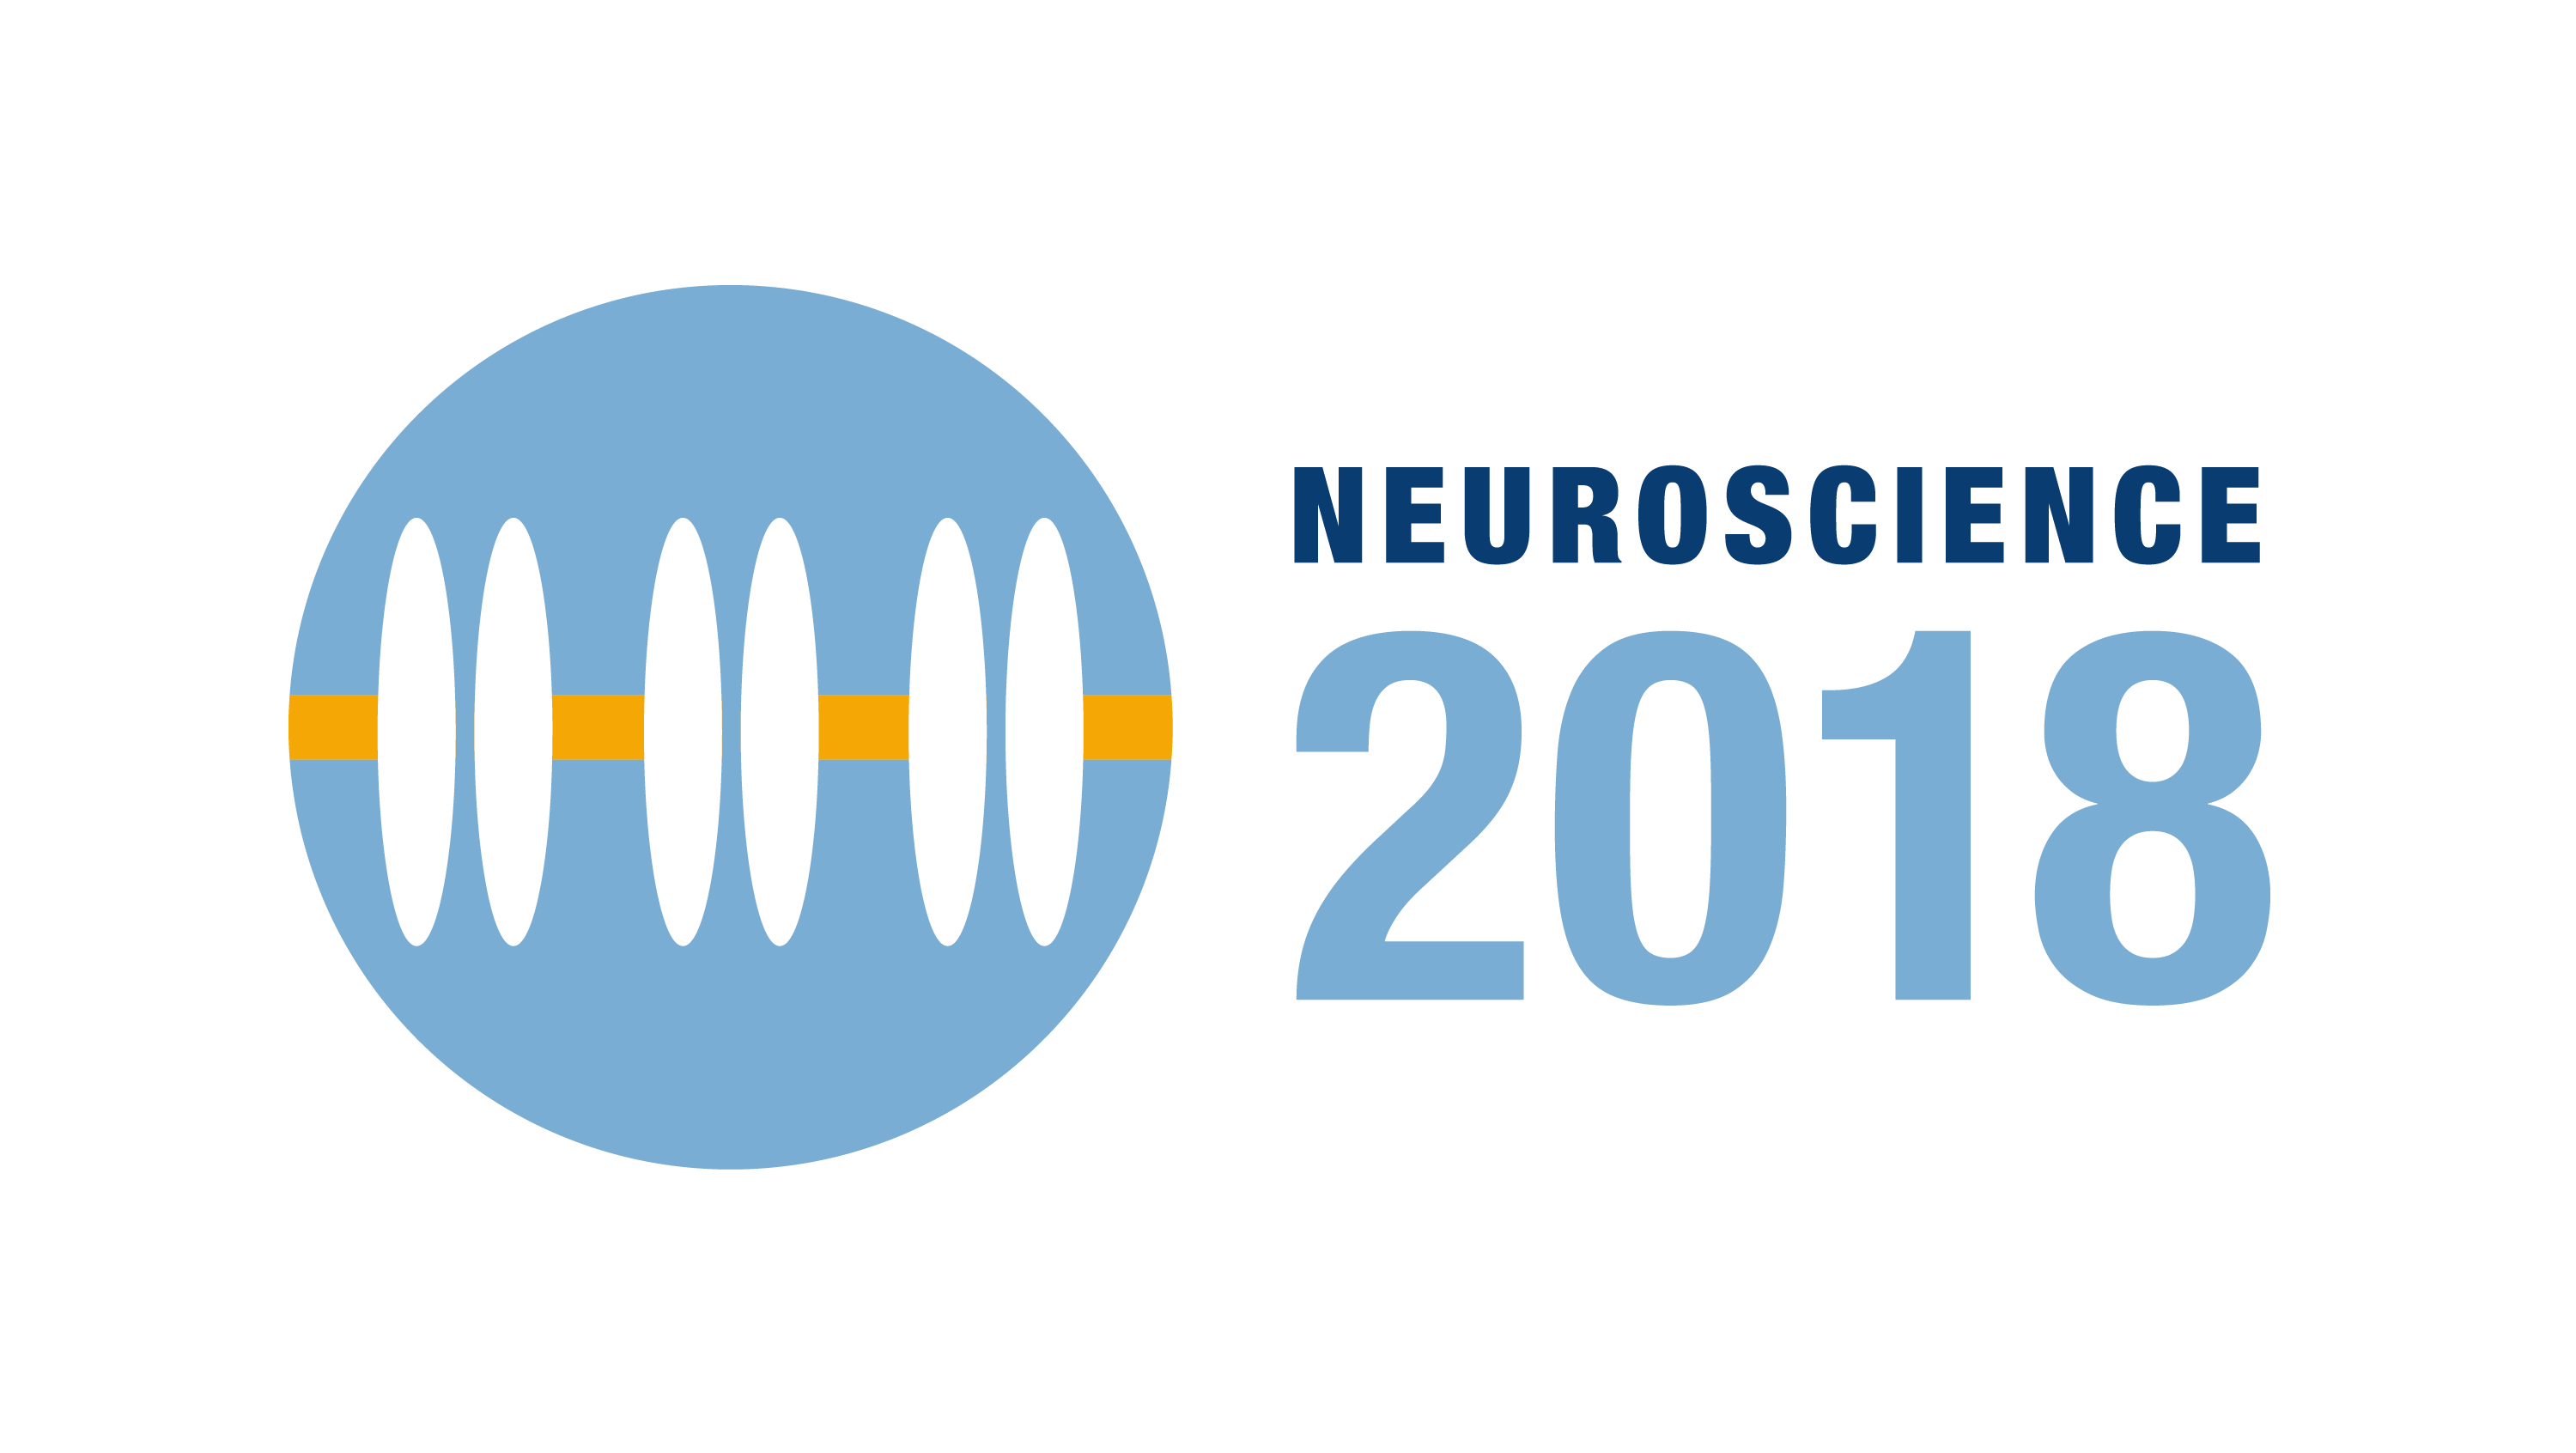 Society for Neuroscience - Past and Future Annual Meetings